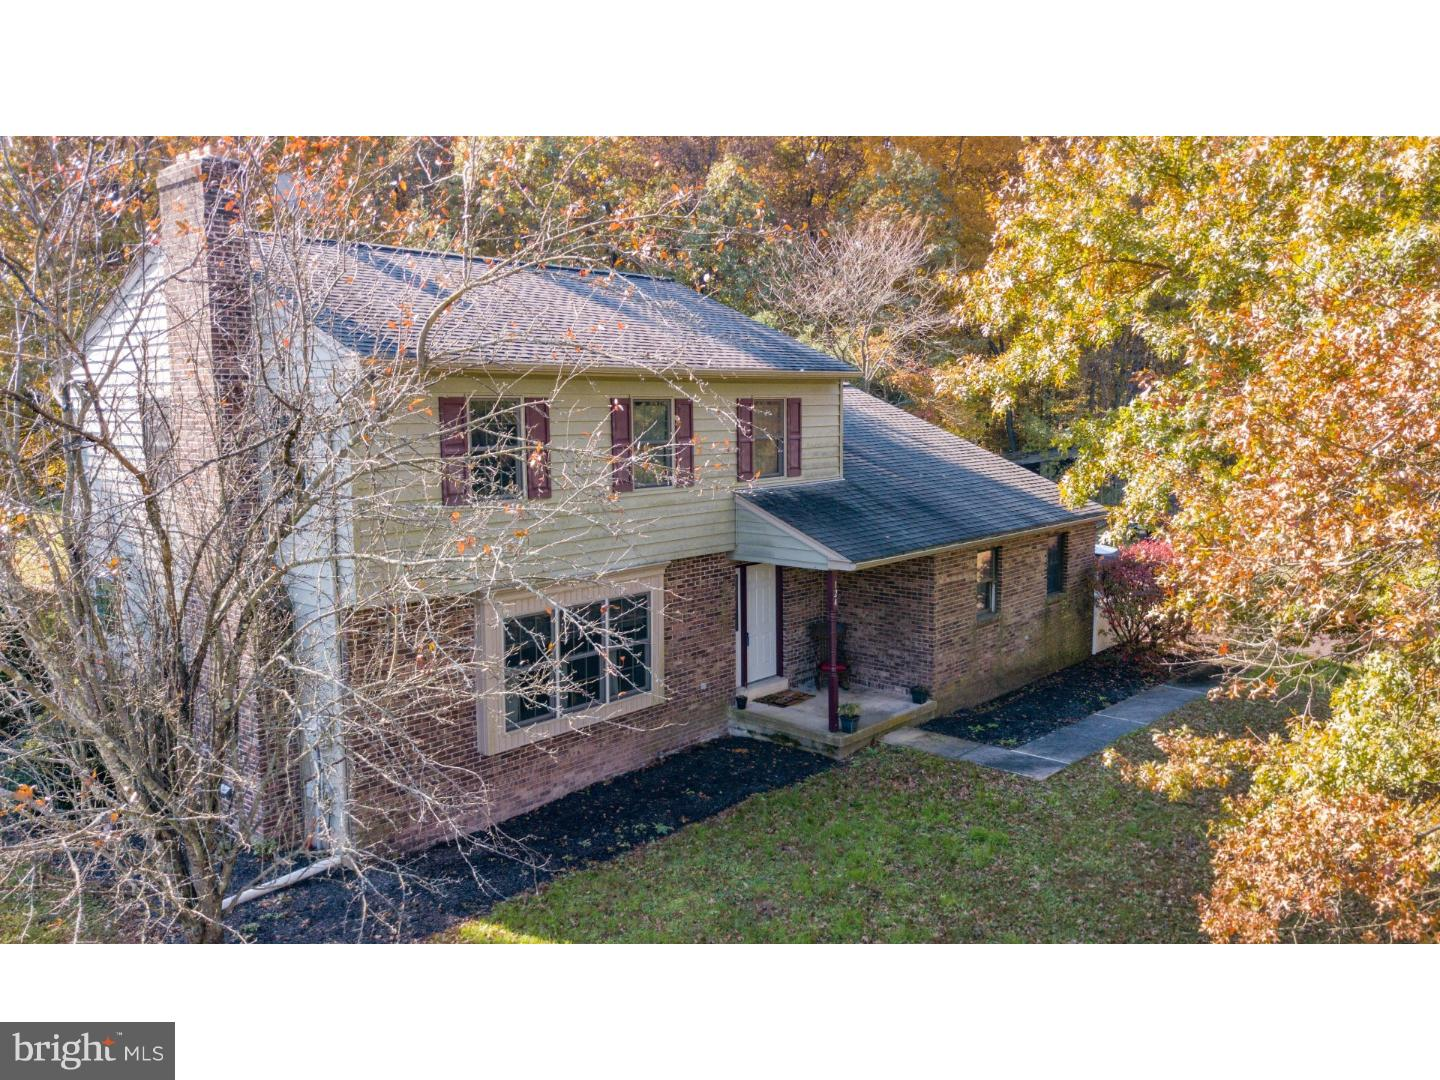 124 OLD MILL ROAD, SELLERSVILLE, PA 18960